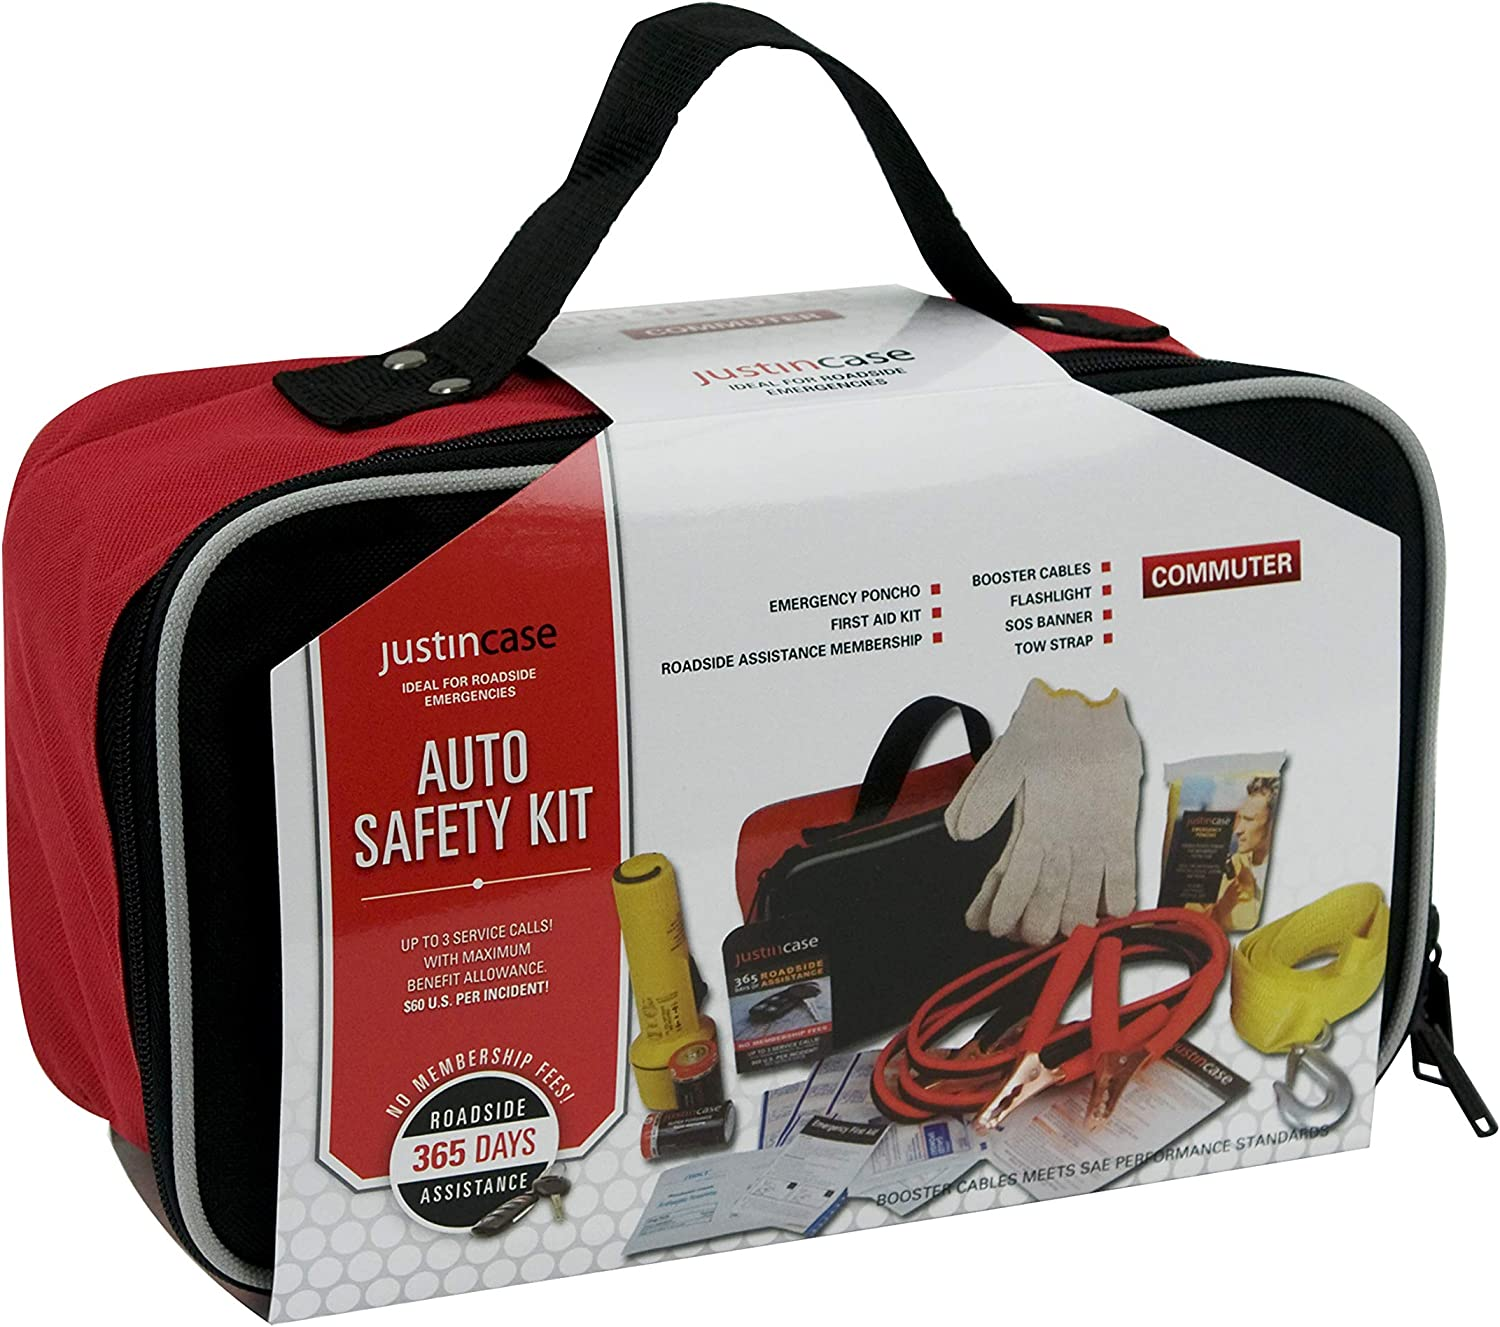 Car Emergency Kit with Booster Cables Tow Strap Rain Poncho Gloves Justin Case Commuter Auto Safety Kit with 365 days of Roadside Assistance First Aid Kit Flashlight